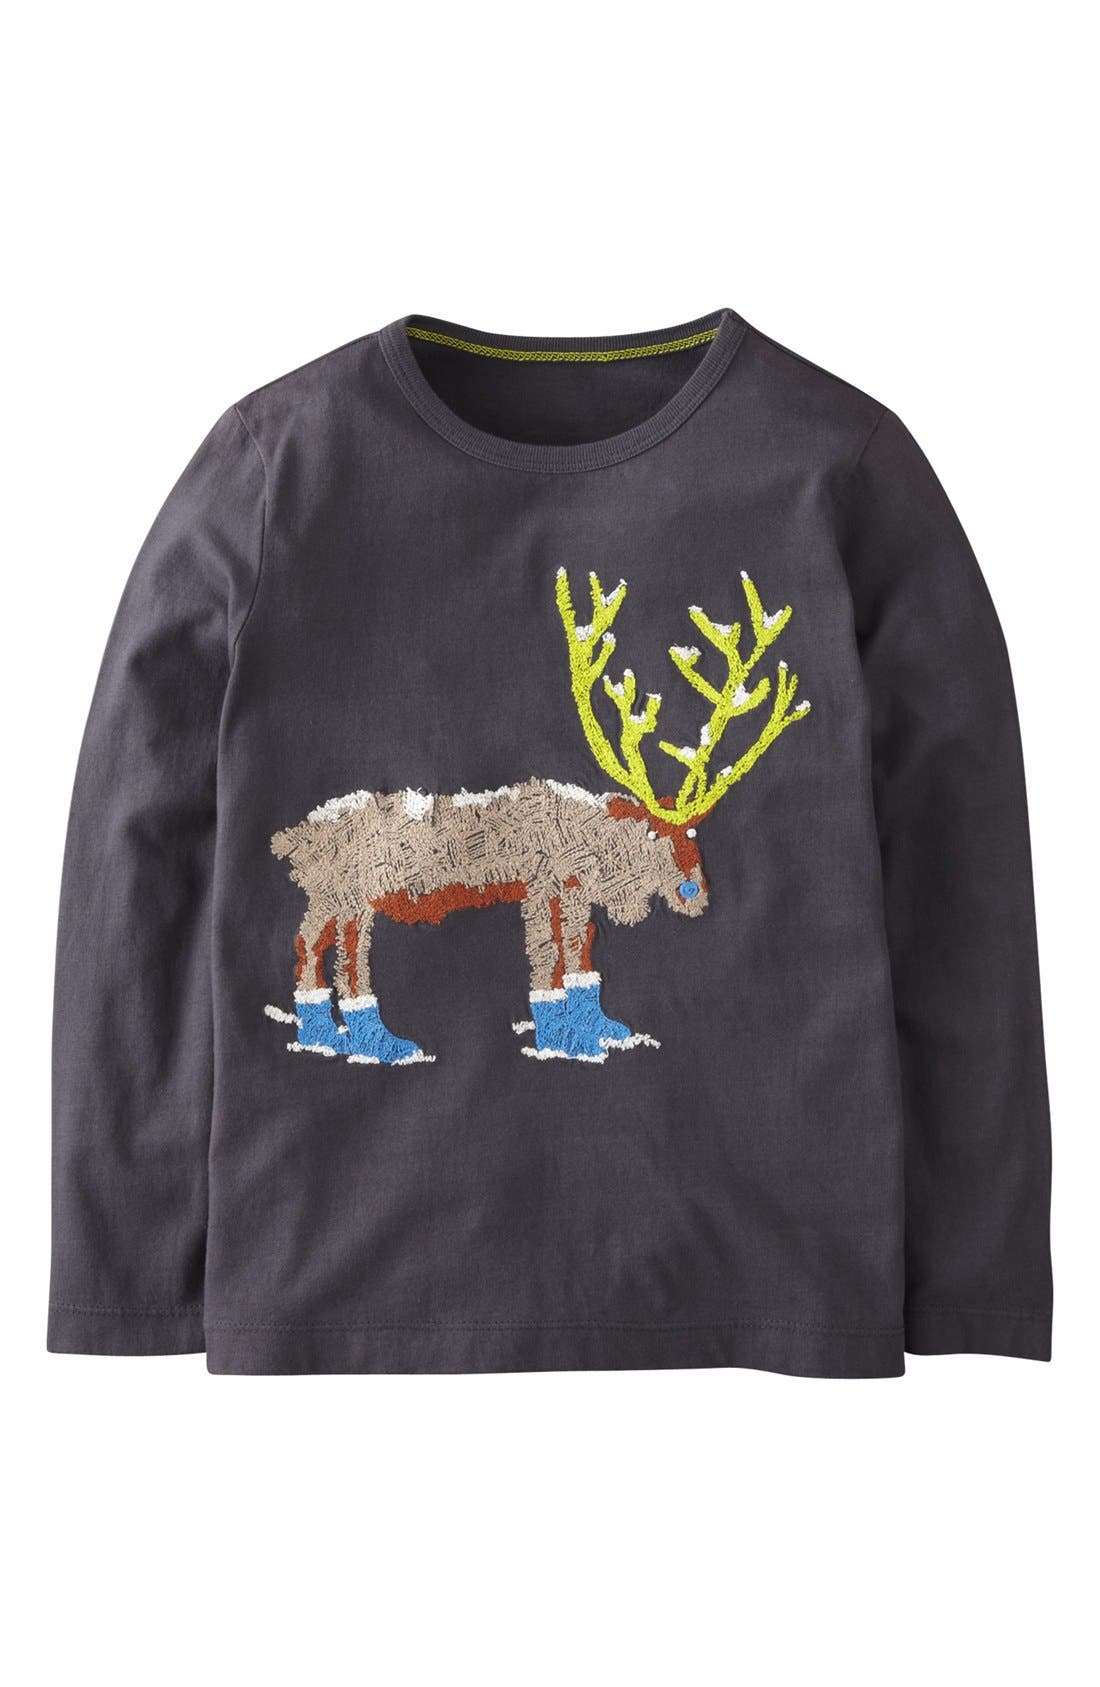 Main Image - Mini Boden 'Super Stitch' Long Sleeve T-Shirt (Toddler Boys, Little Boys & Big Boys)